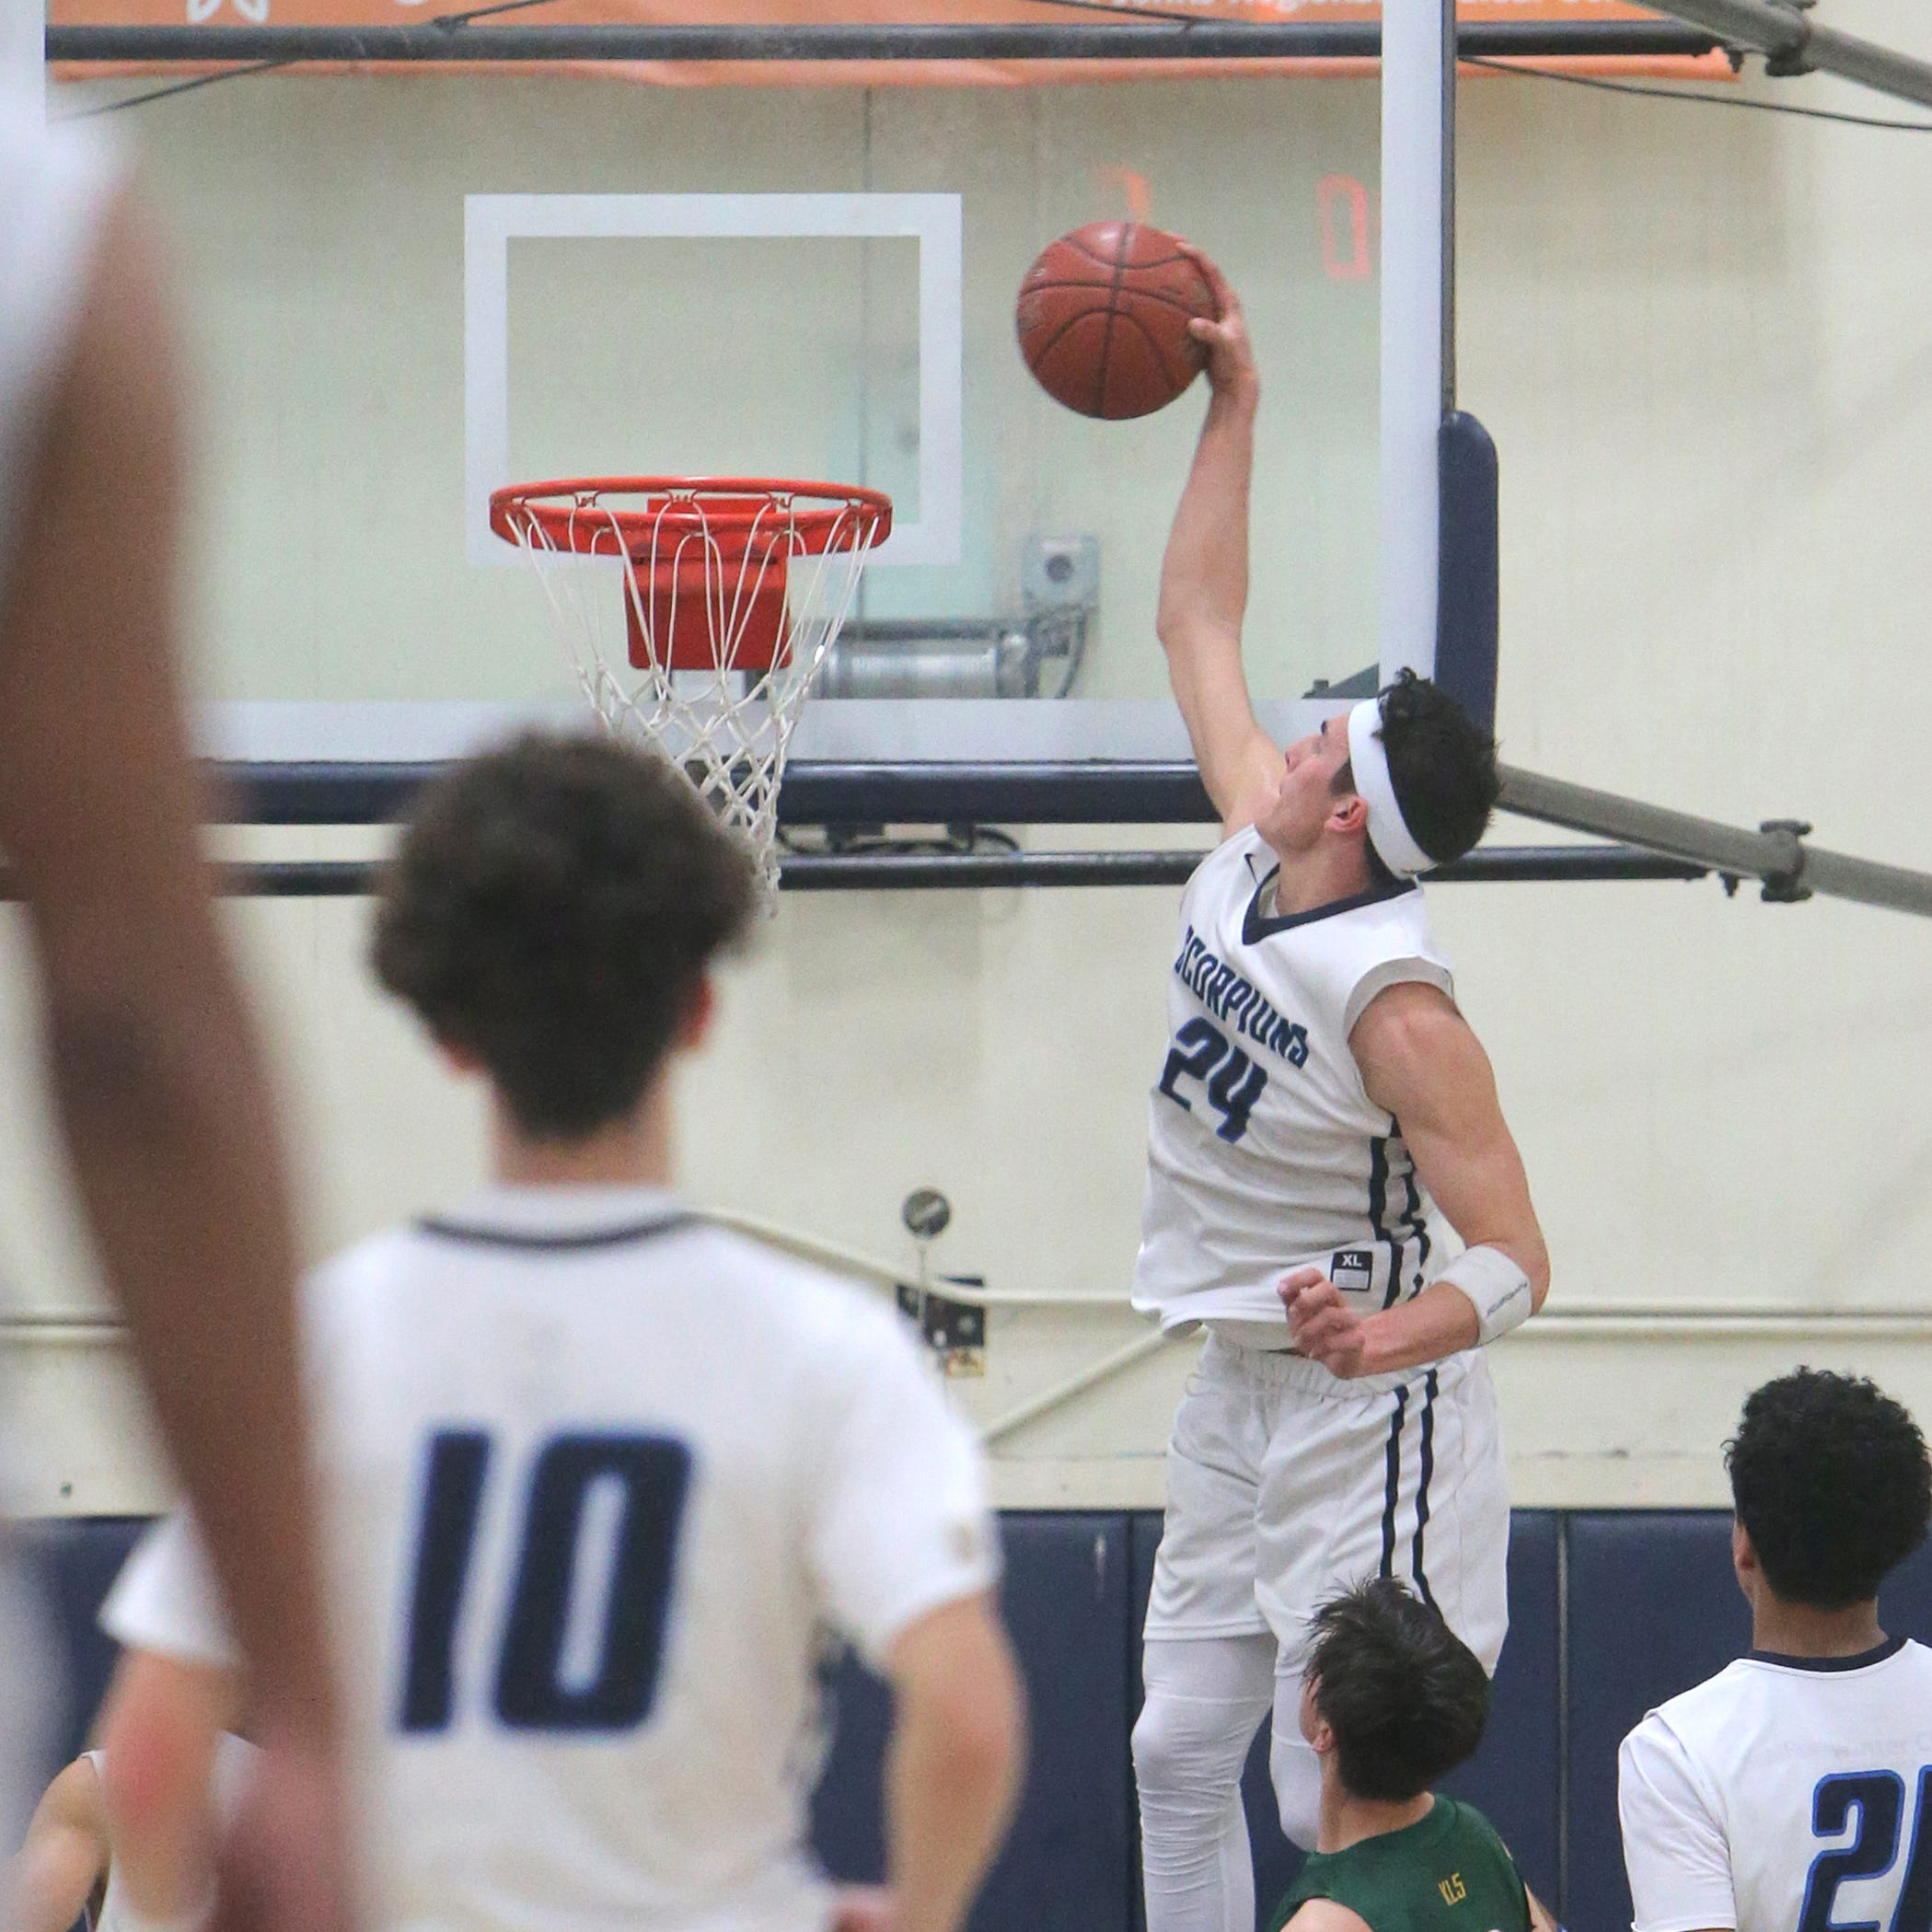 Friday's Top Prep Performers: Jaquez sets Camarillo record with 54-point night